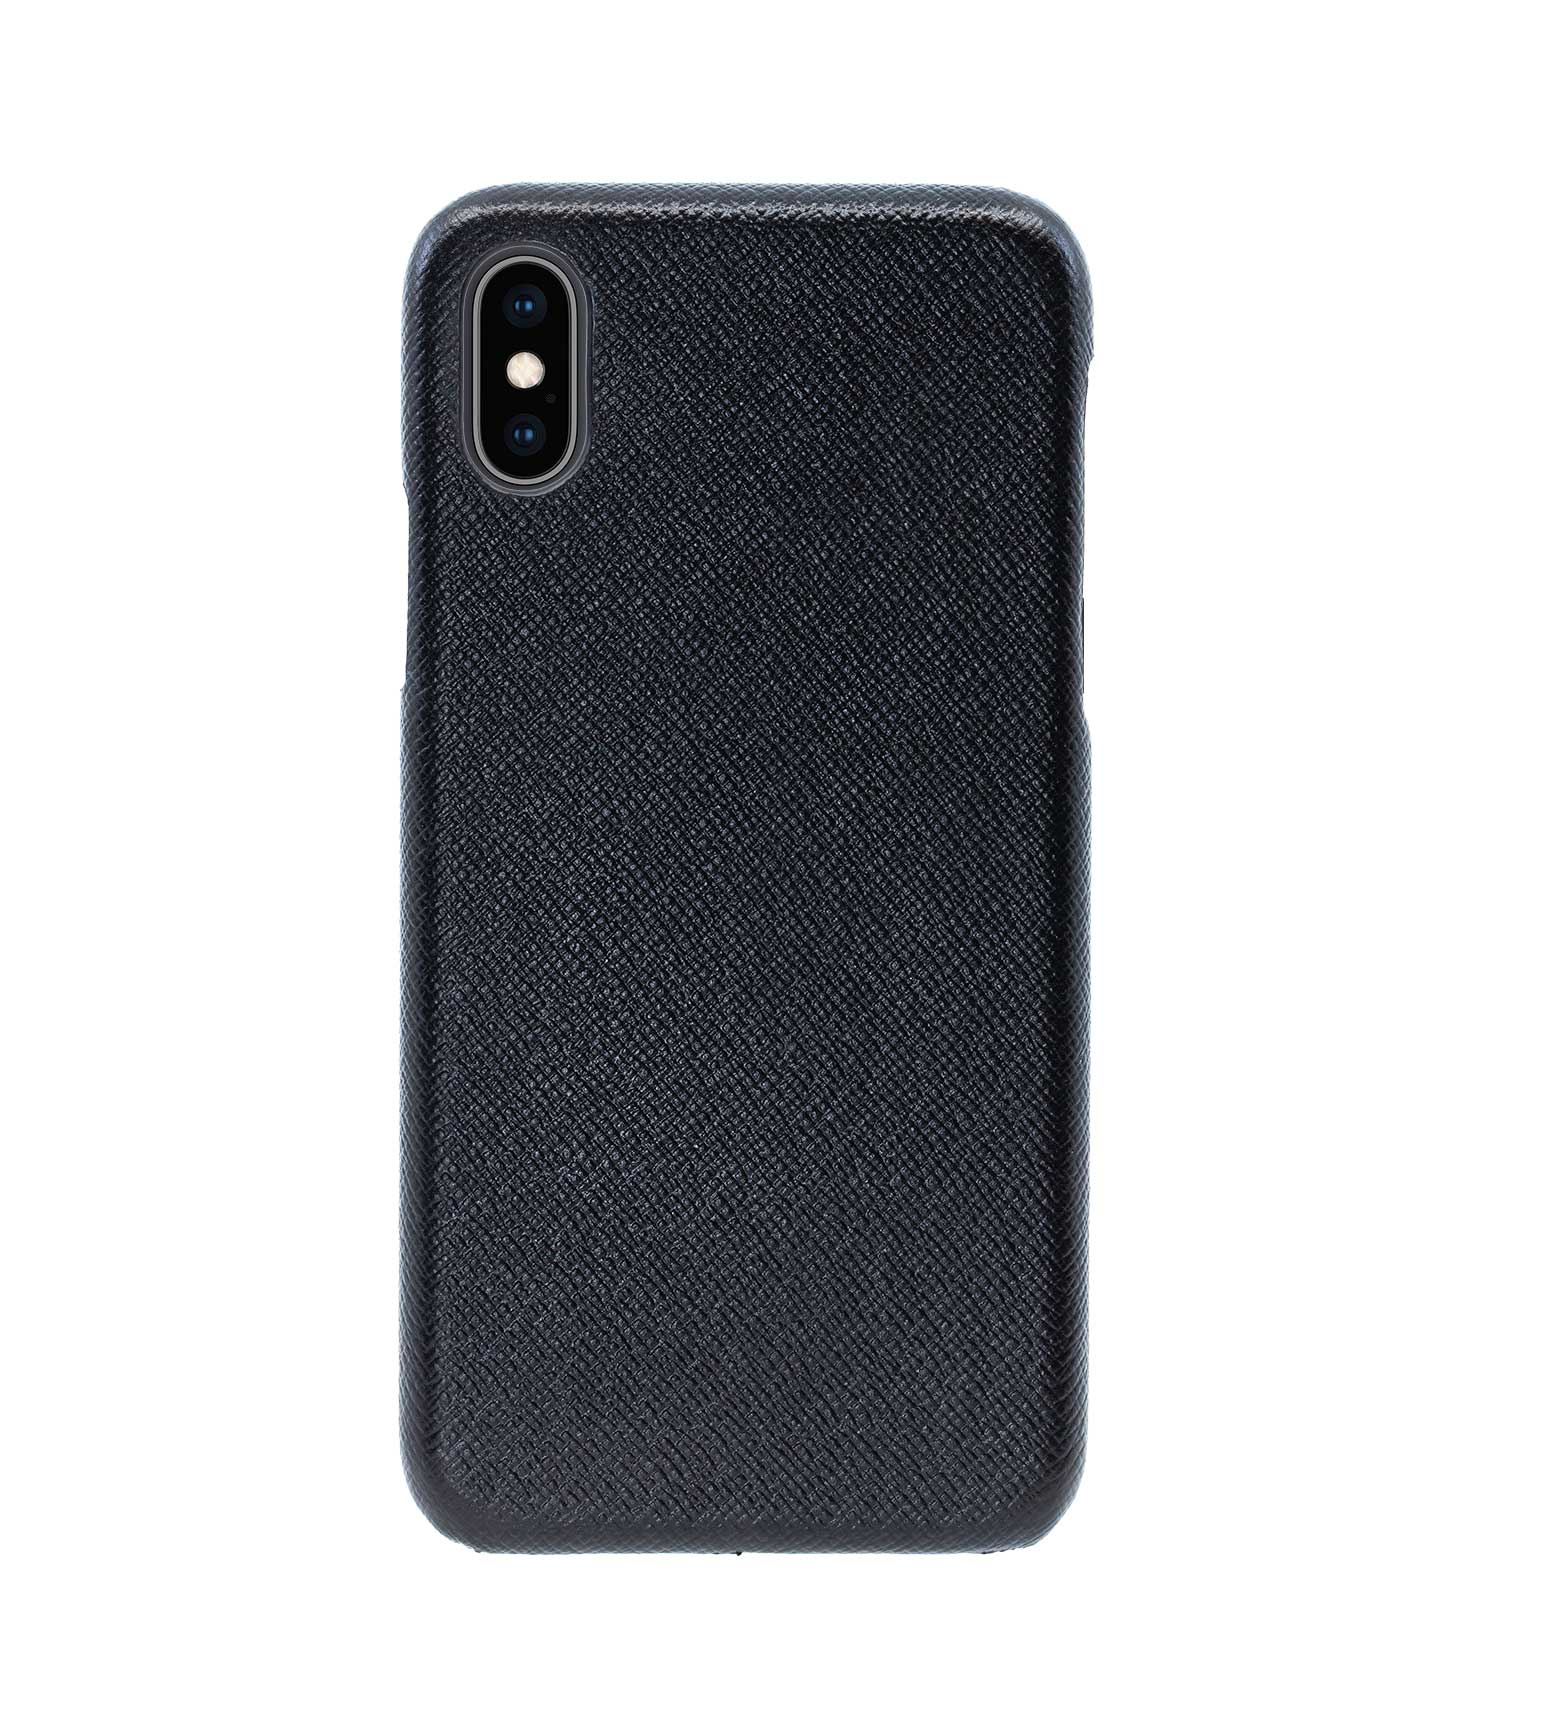 Купить Чехол Natural Cow Tiffany Leather Case для iPhone X/XS - Черный (Black) в Сочи